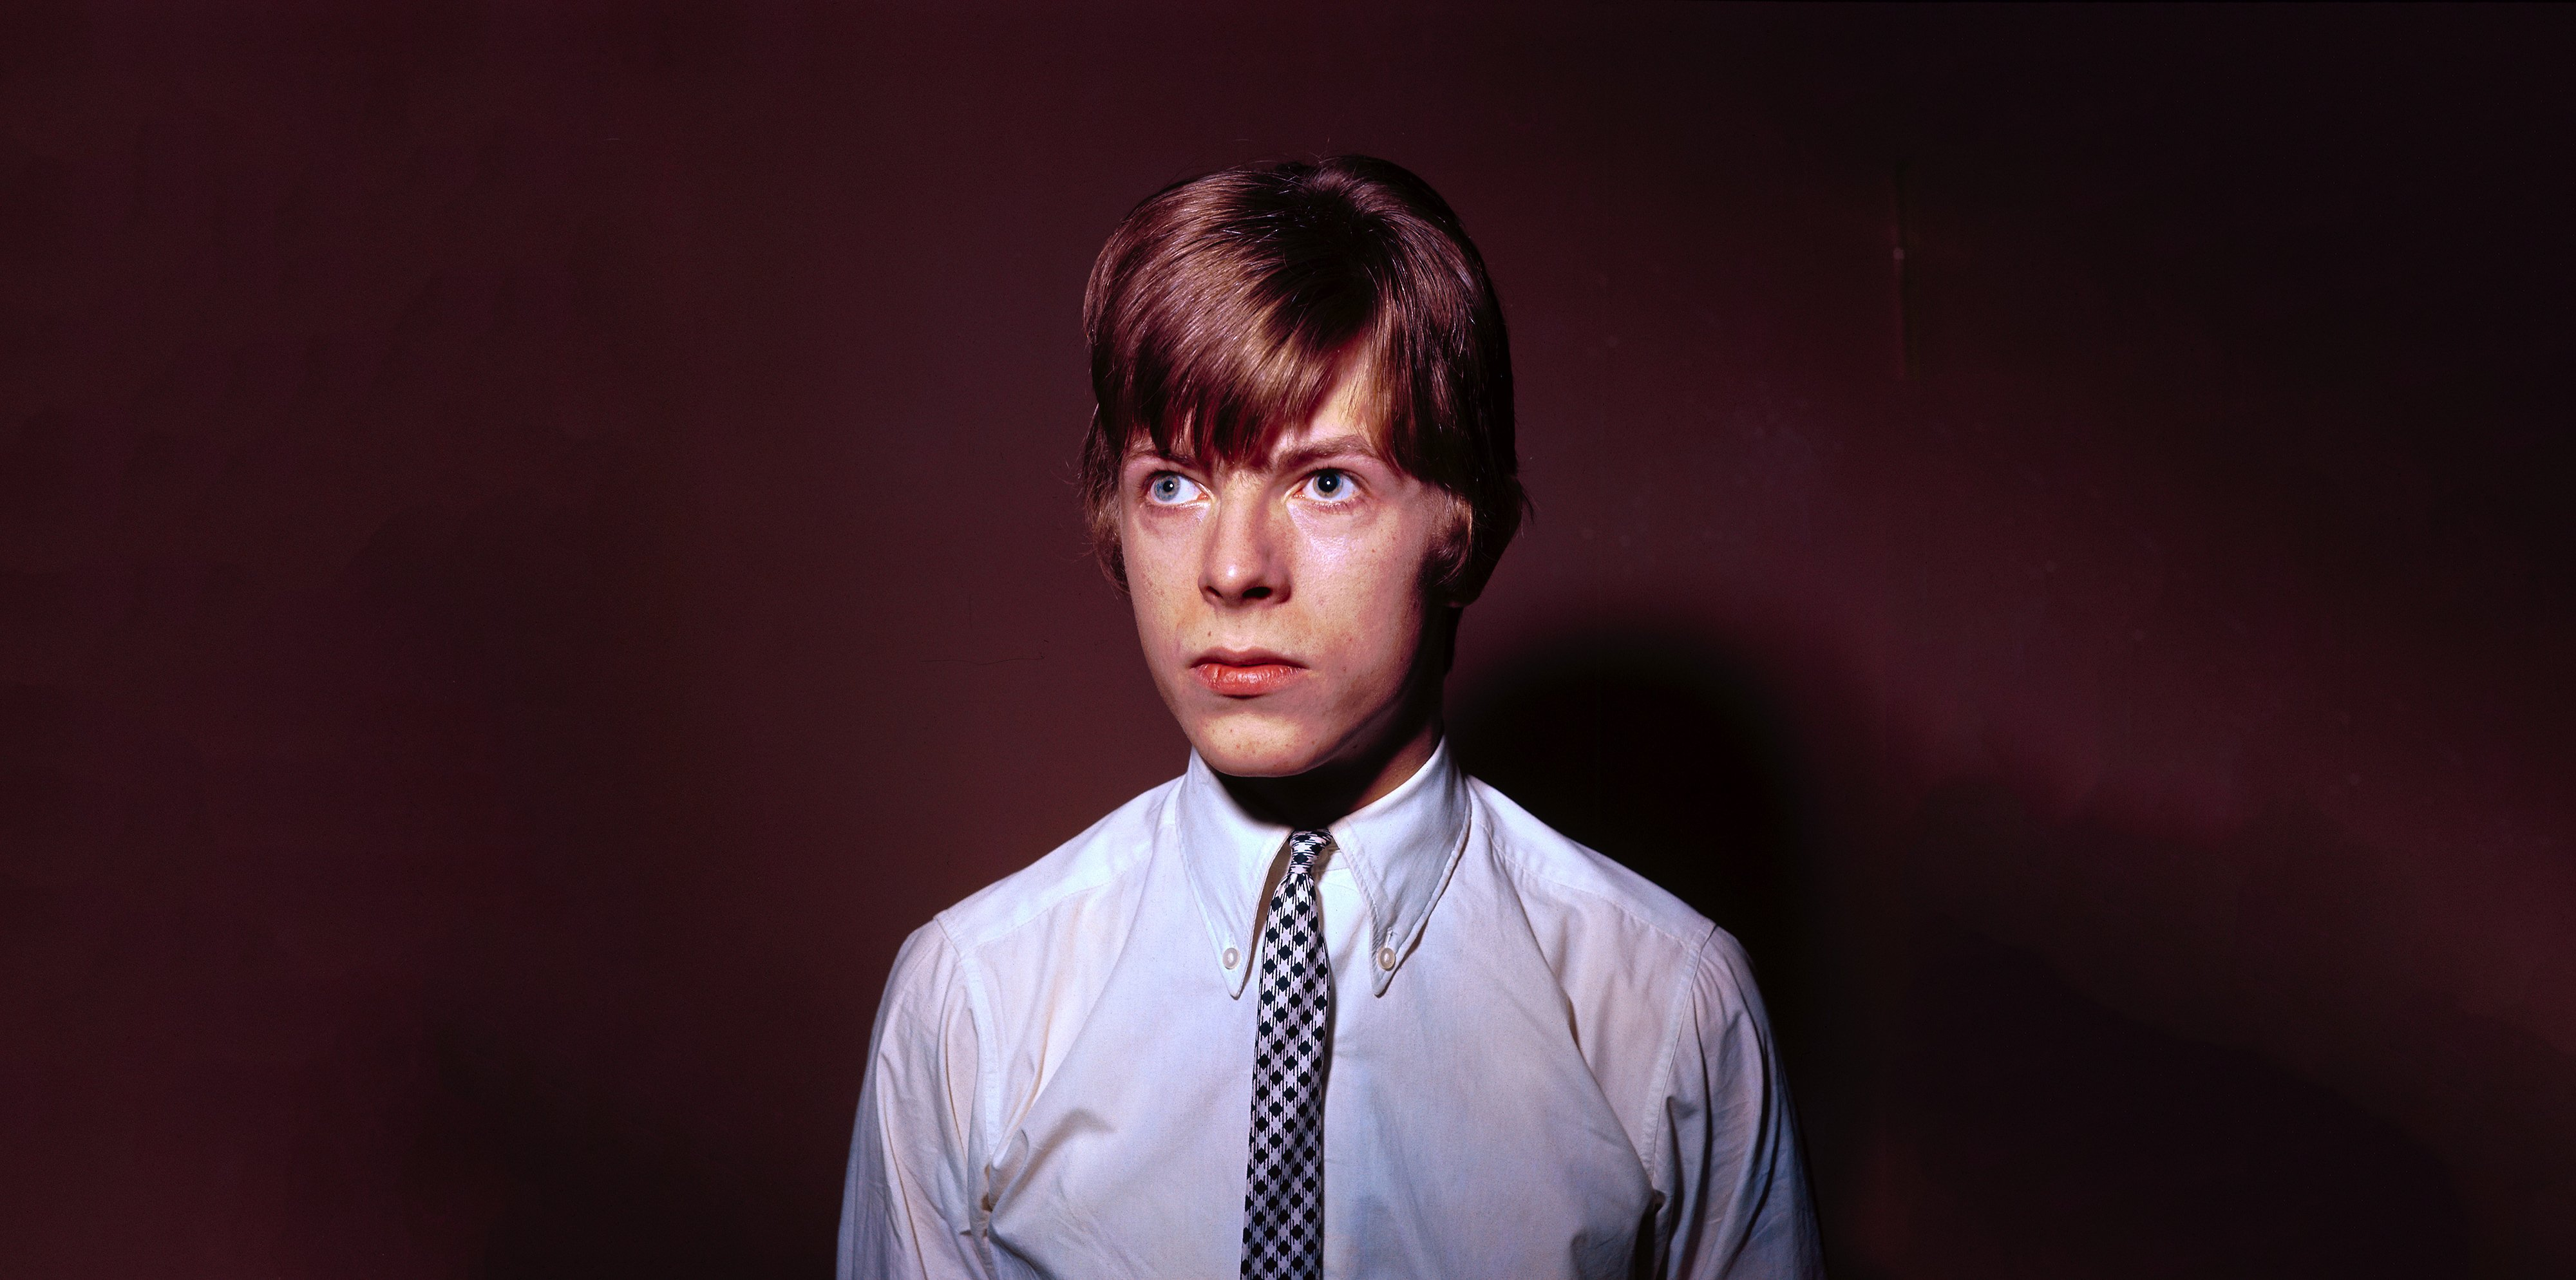 David Bowie in 1969